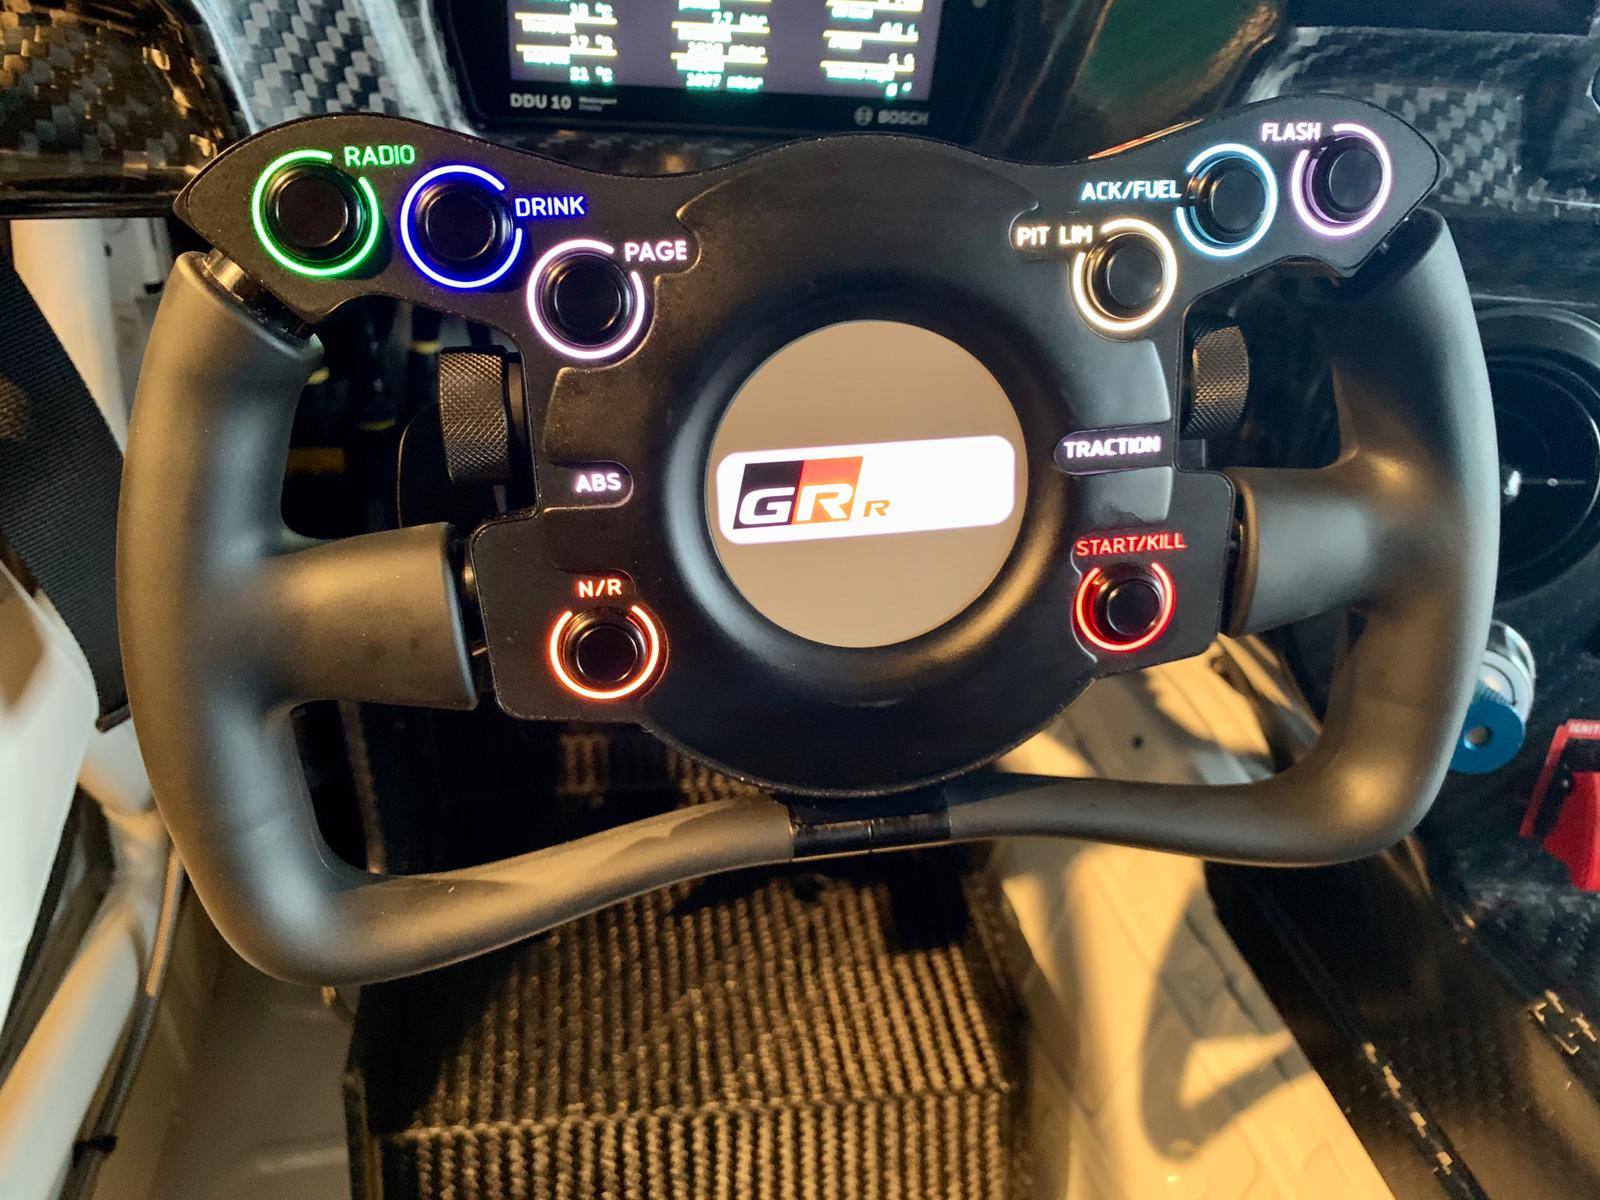 The new Supra is very well thought out ergonomically and has a variety of in-cockpit adjustments for the driver.